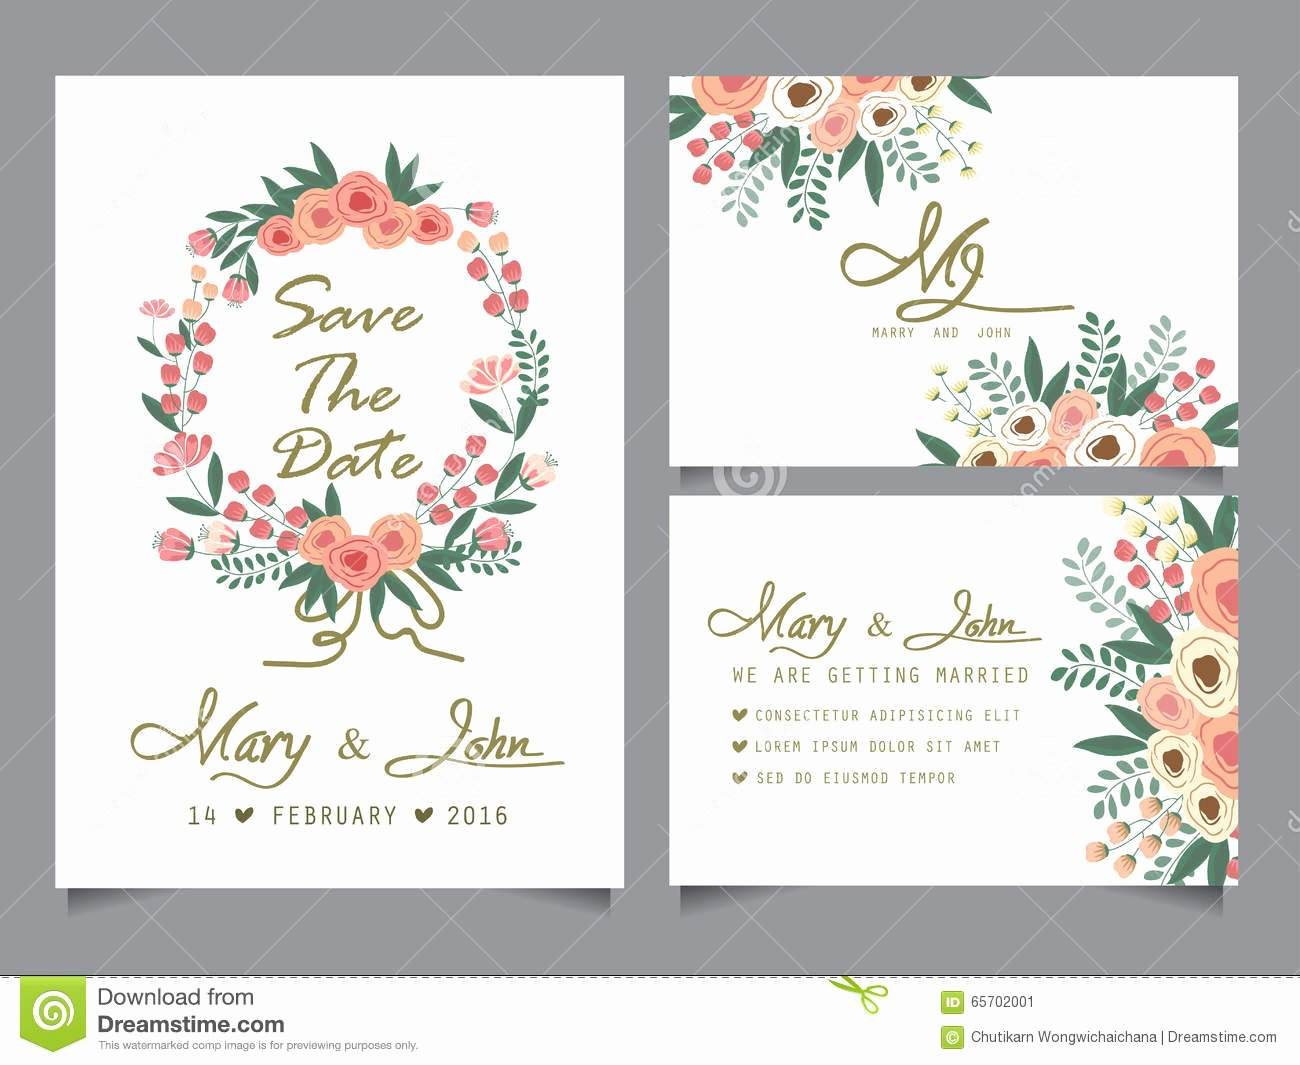 Bridesmaid Card Template Lovely Wedding Invitation Card Template Word